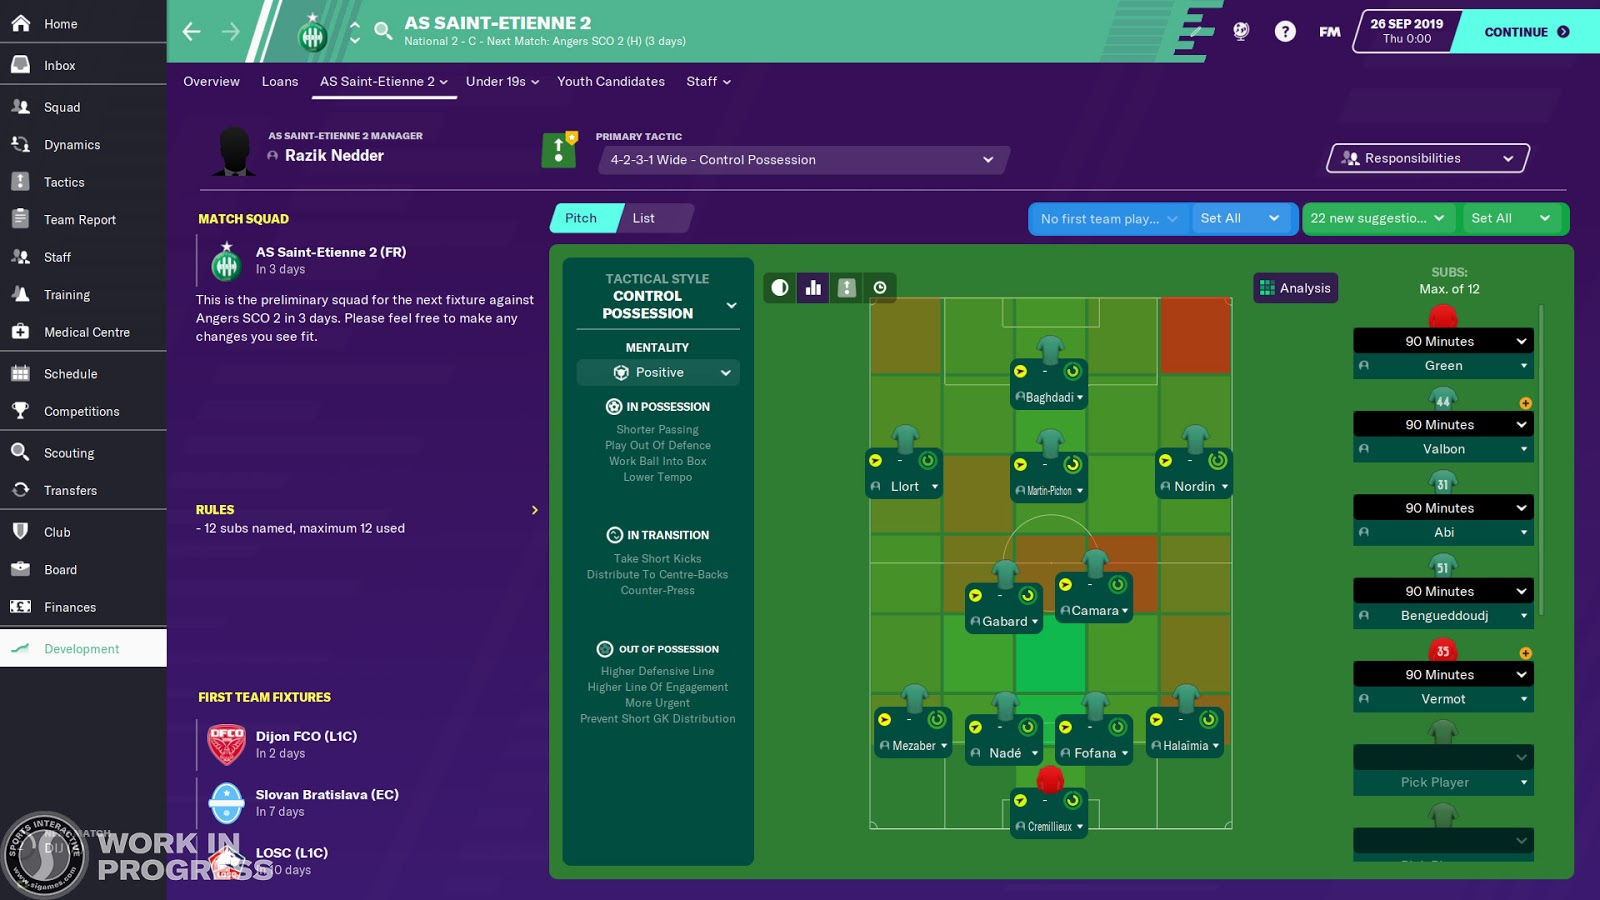 Youth Tactics screen in Football Manager 2020